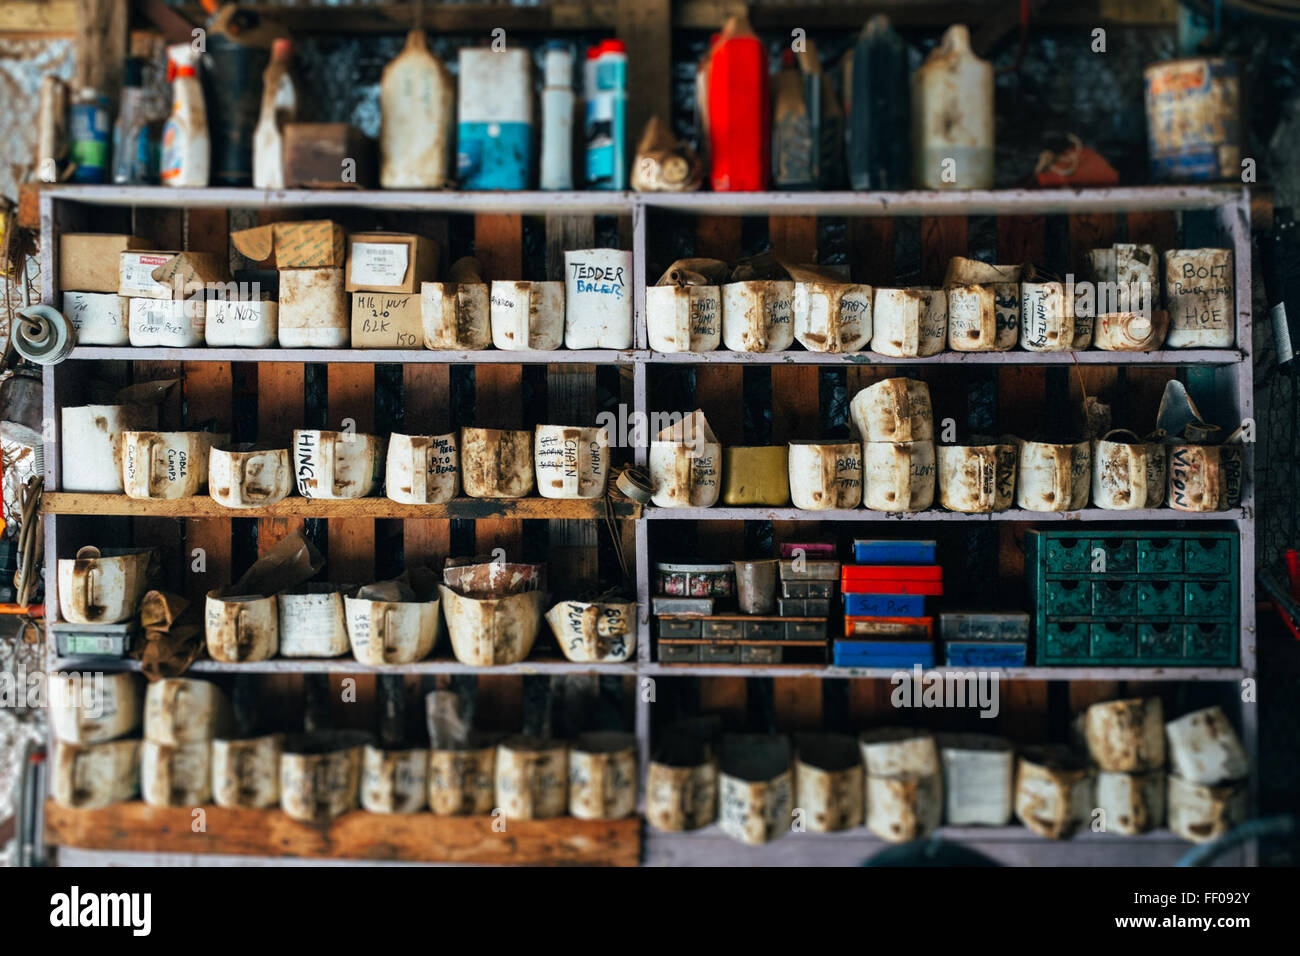 Shelf with Work Tools Shelf with Work Tool - Stock Image